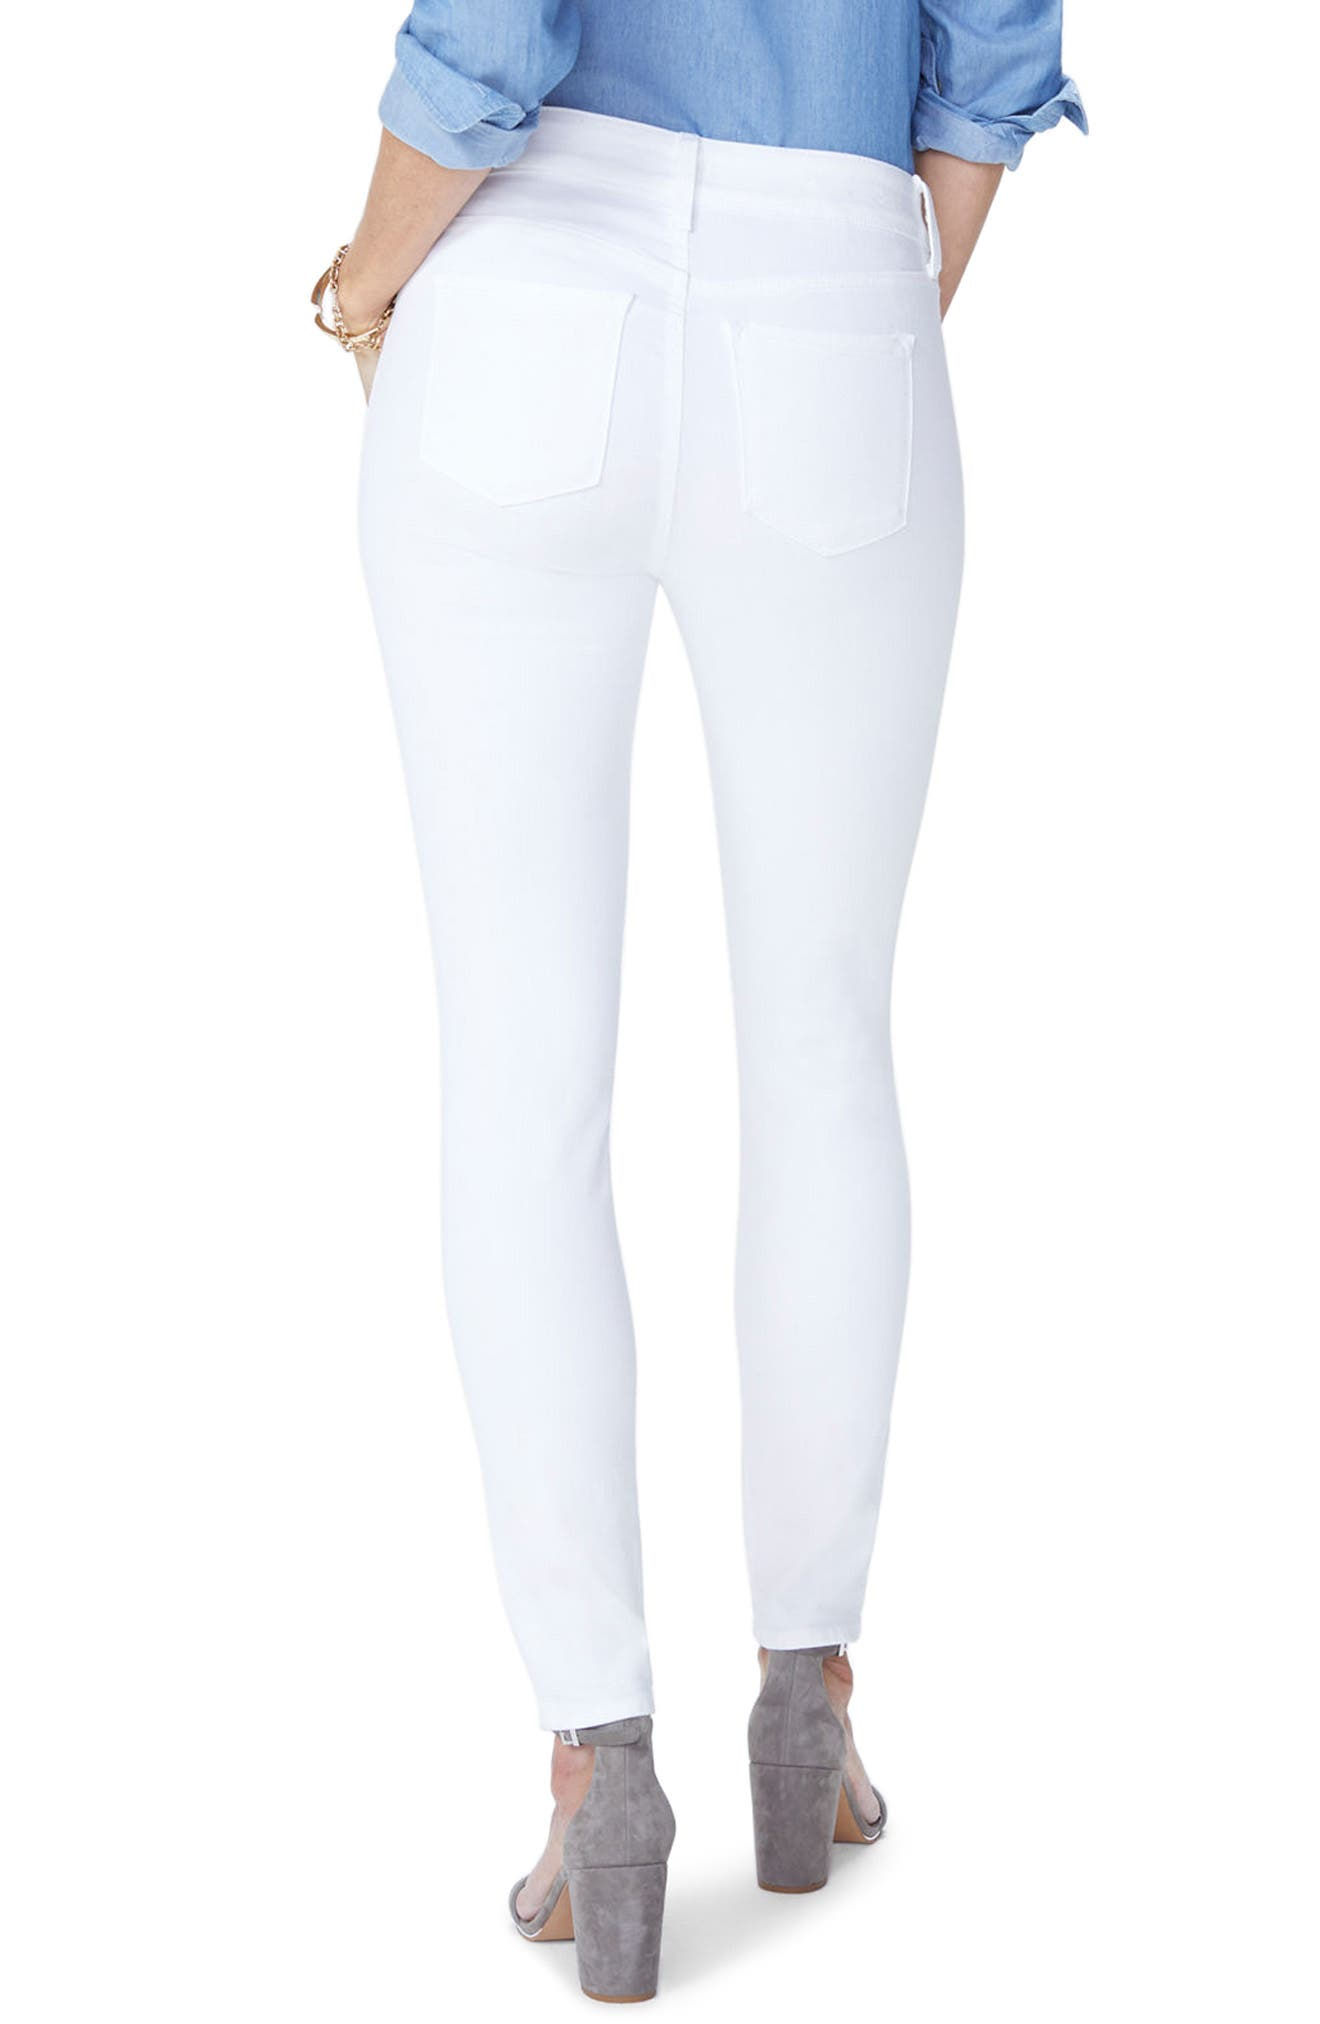 Ami Skinny Jeans,                             Alternate thumbnail 2, color,